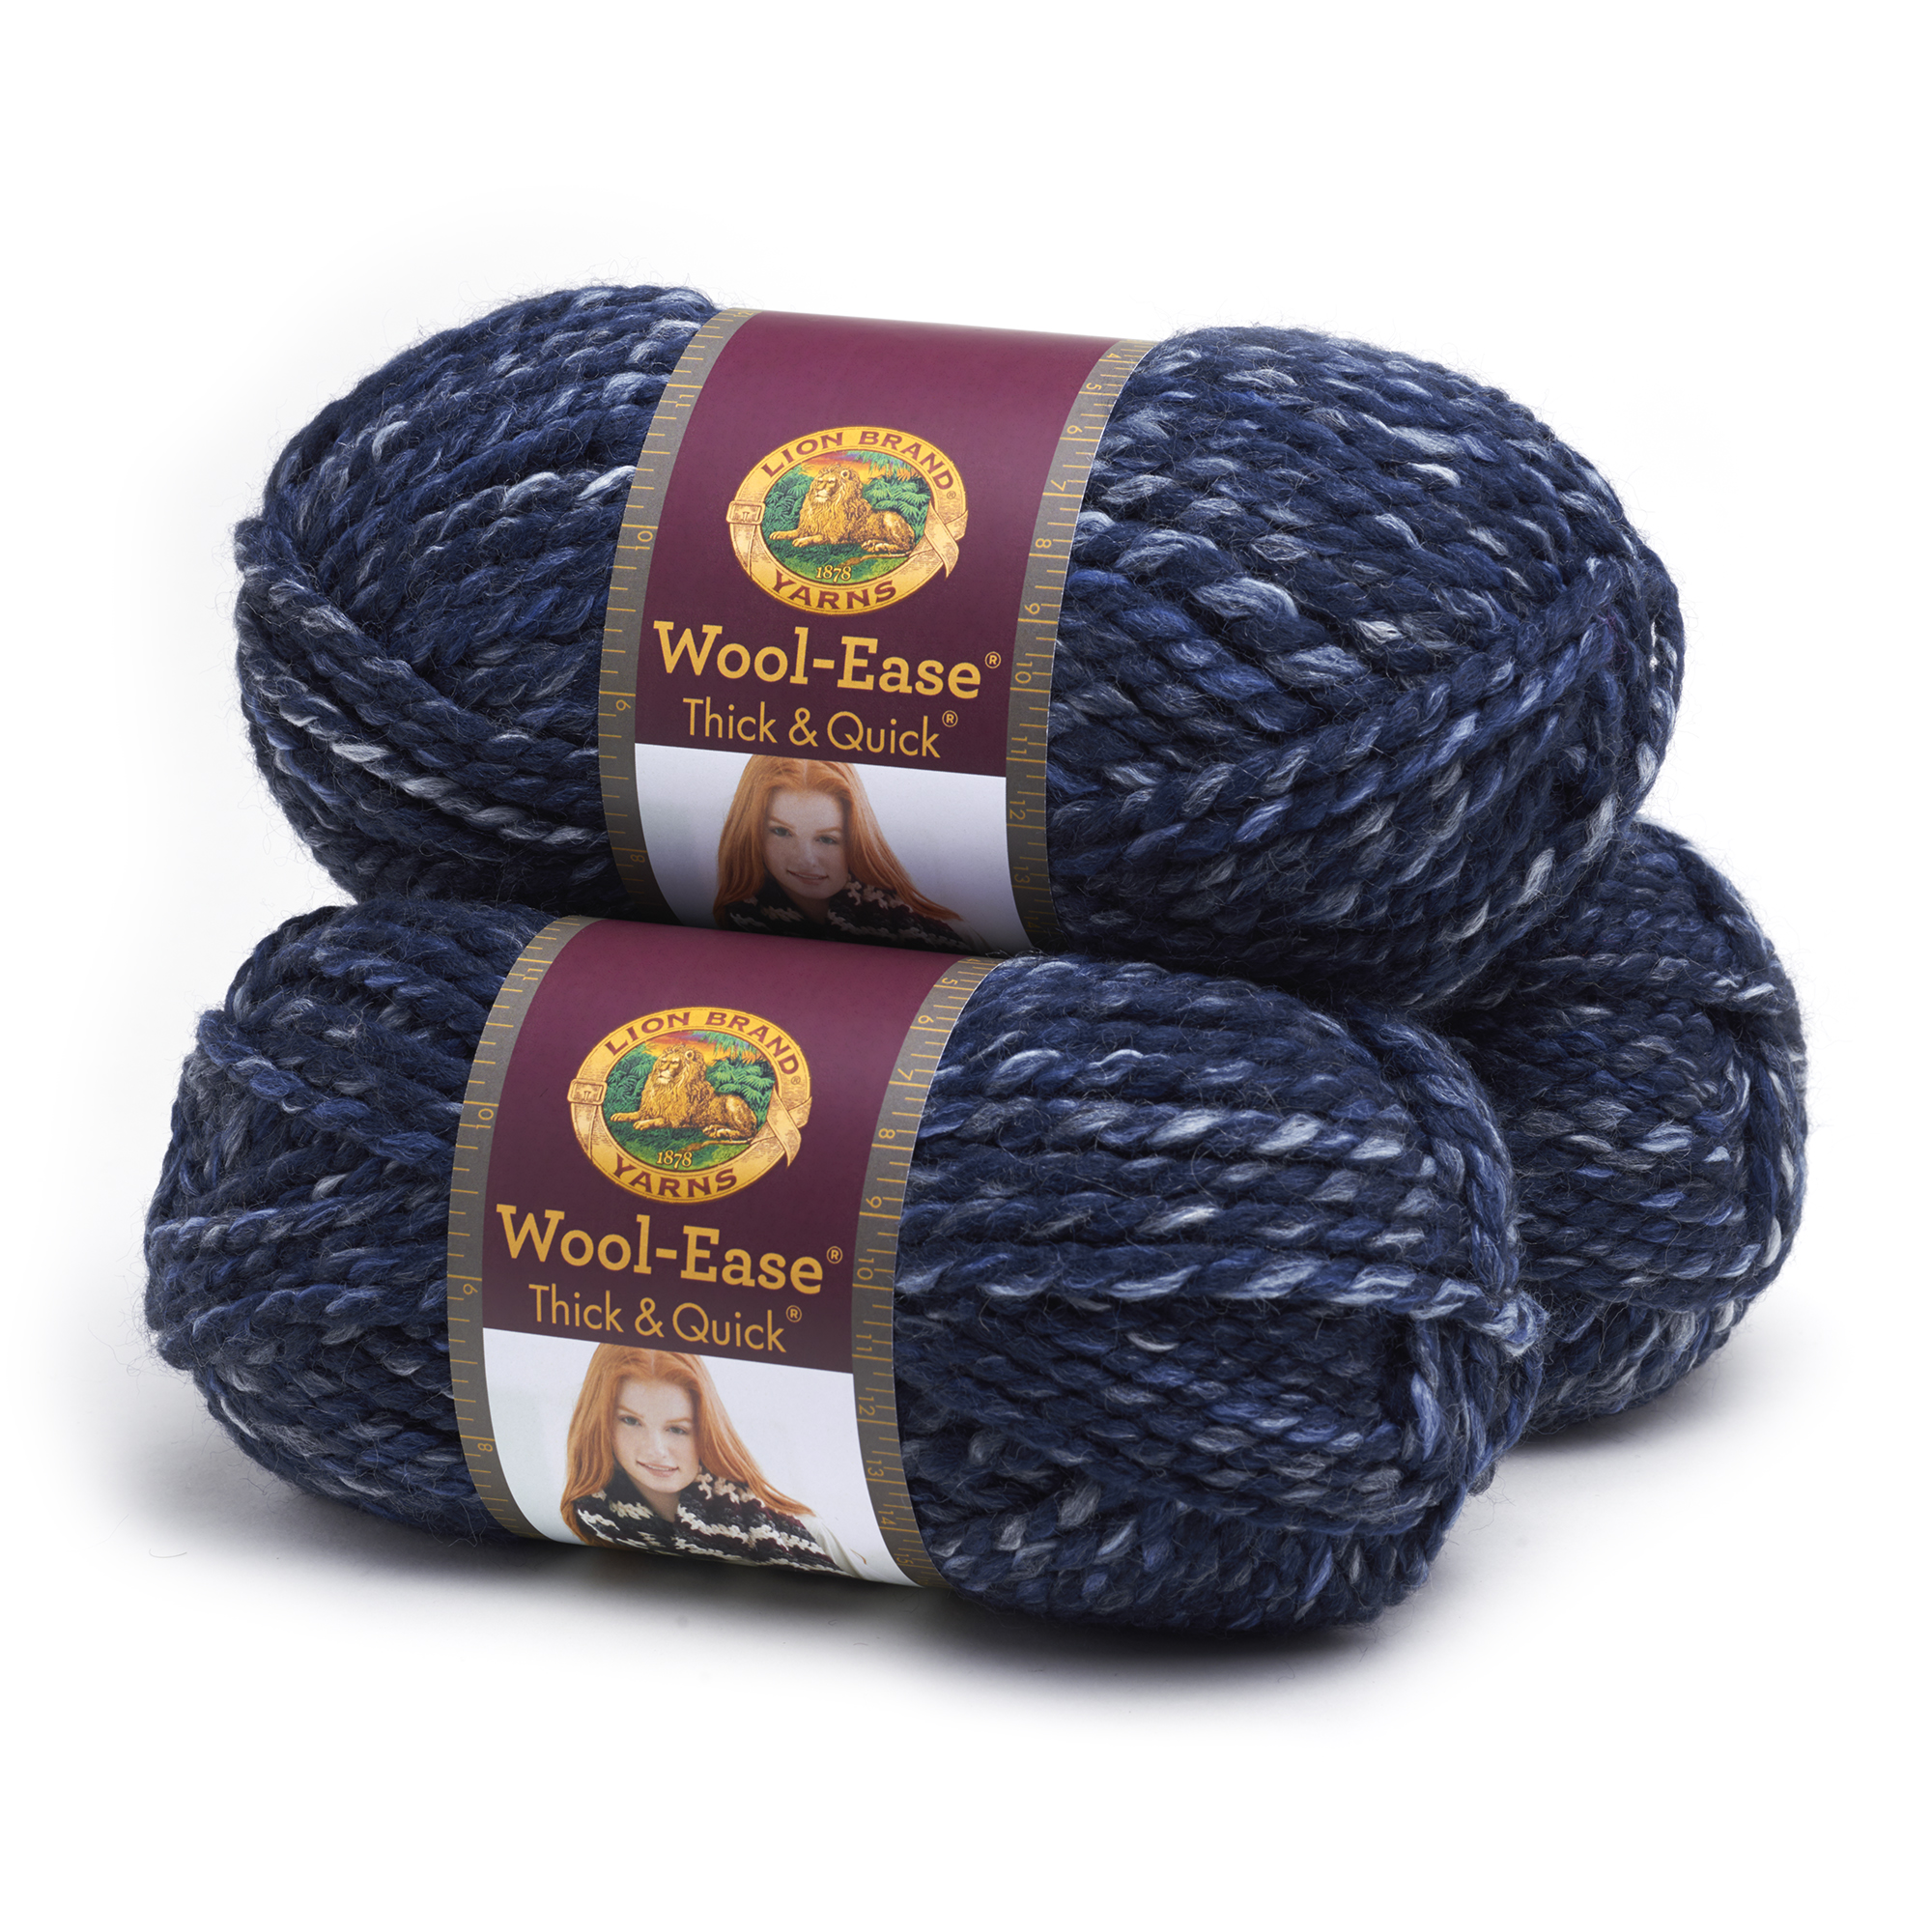 Lion Brand Yarn Wool-Ease Thick & Quick River Run 640-535 3-Pack Classic Wool Yarn